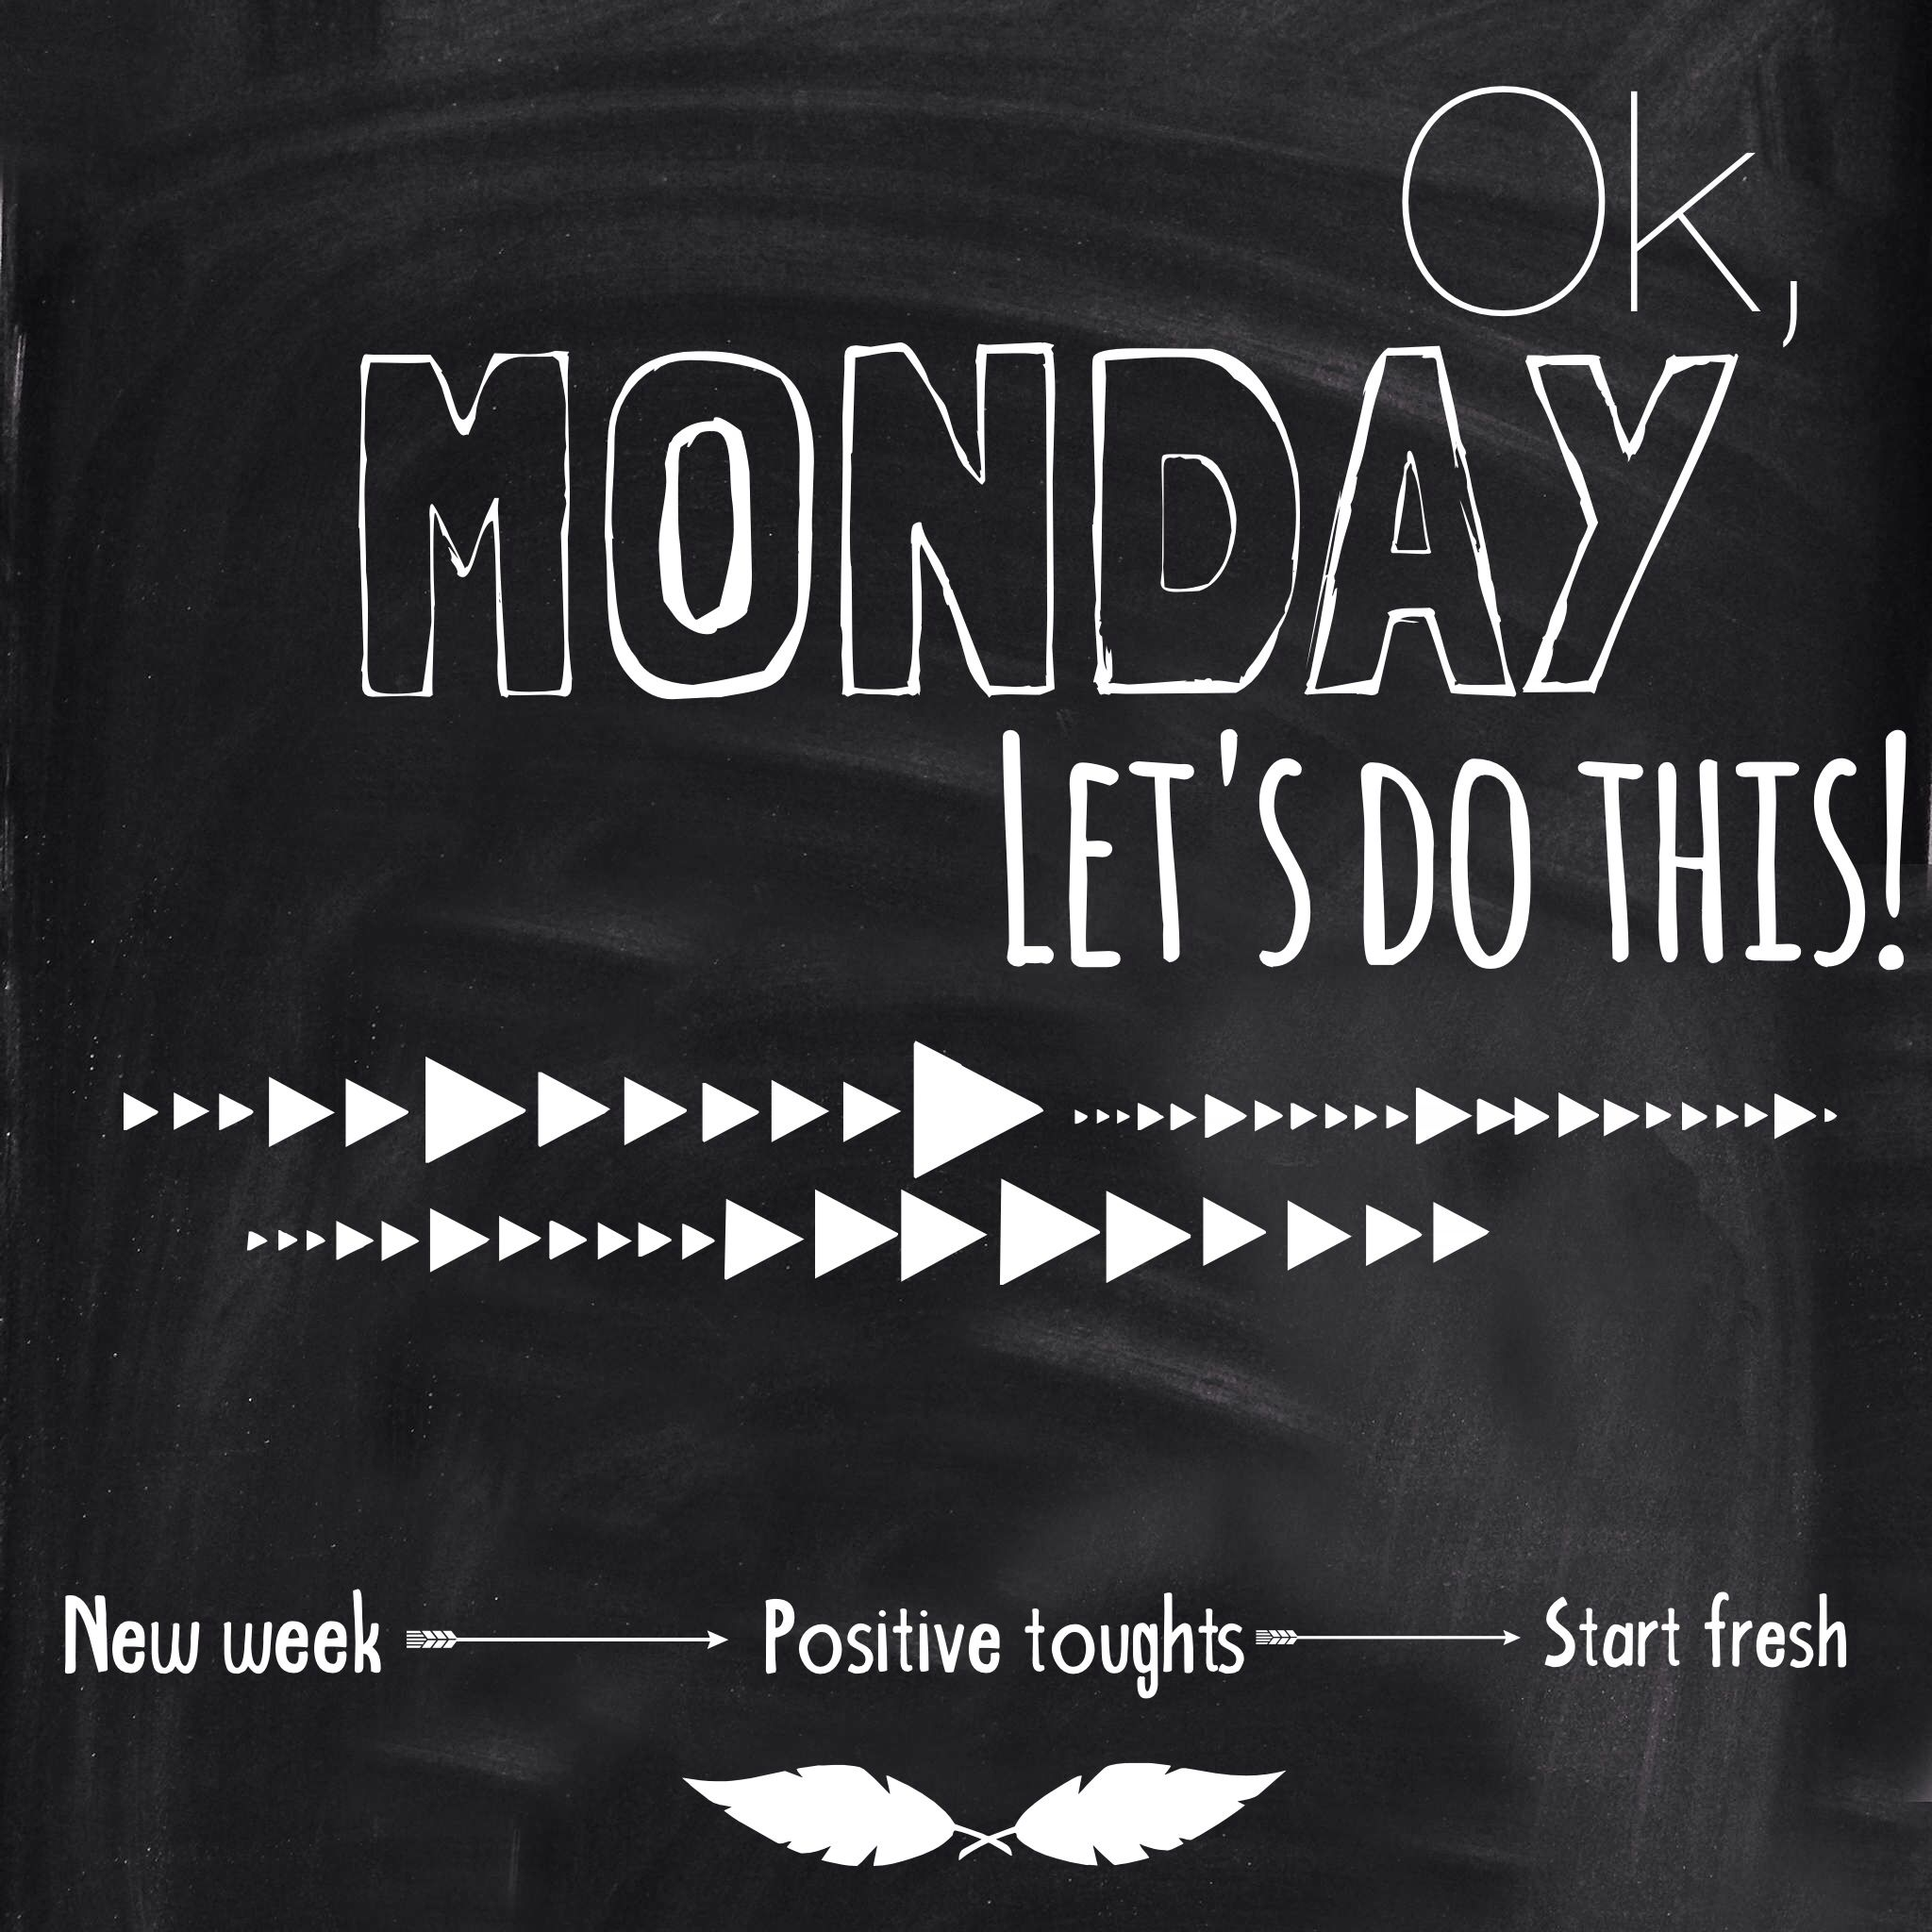 Week Quotes Entrancing Quote Ok Monday Let's Do This New Week Positive Thou